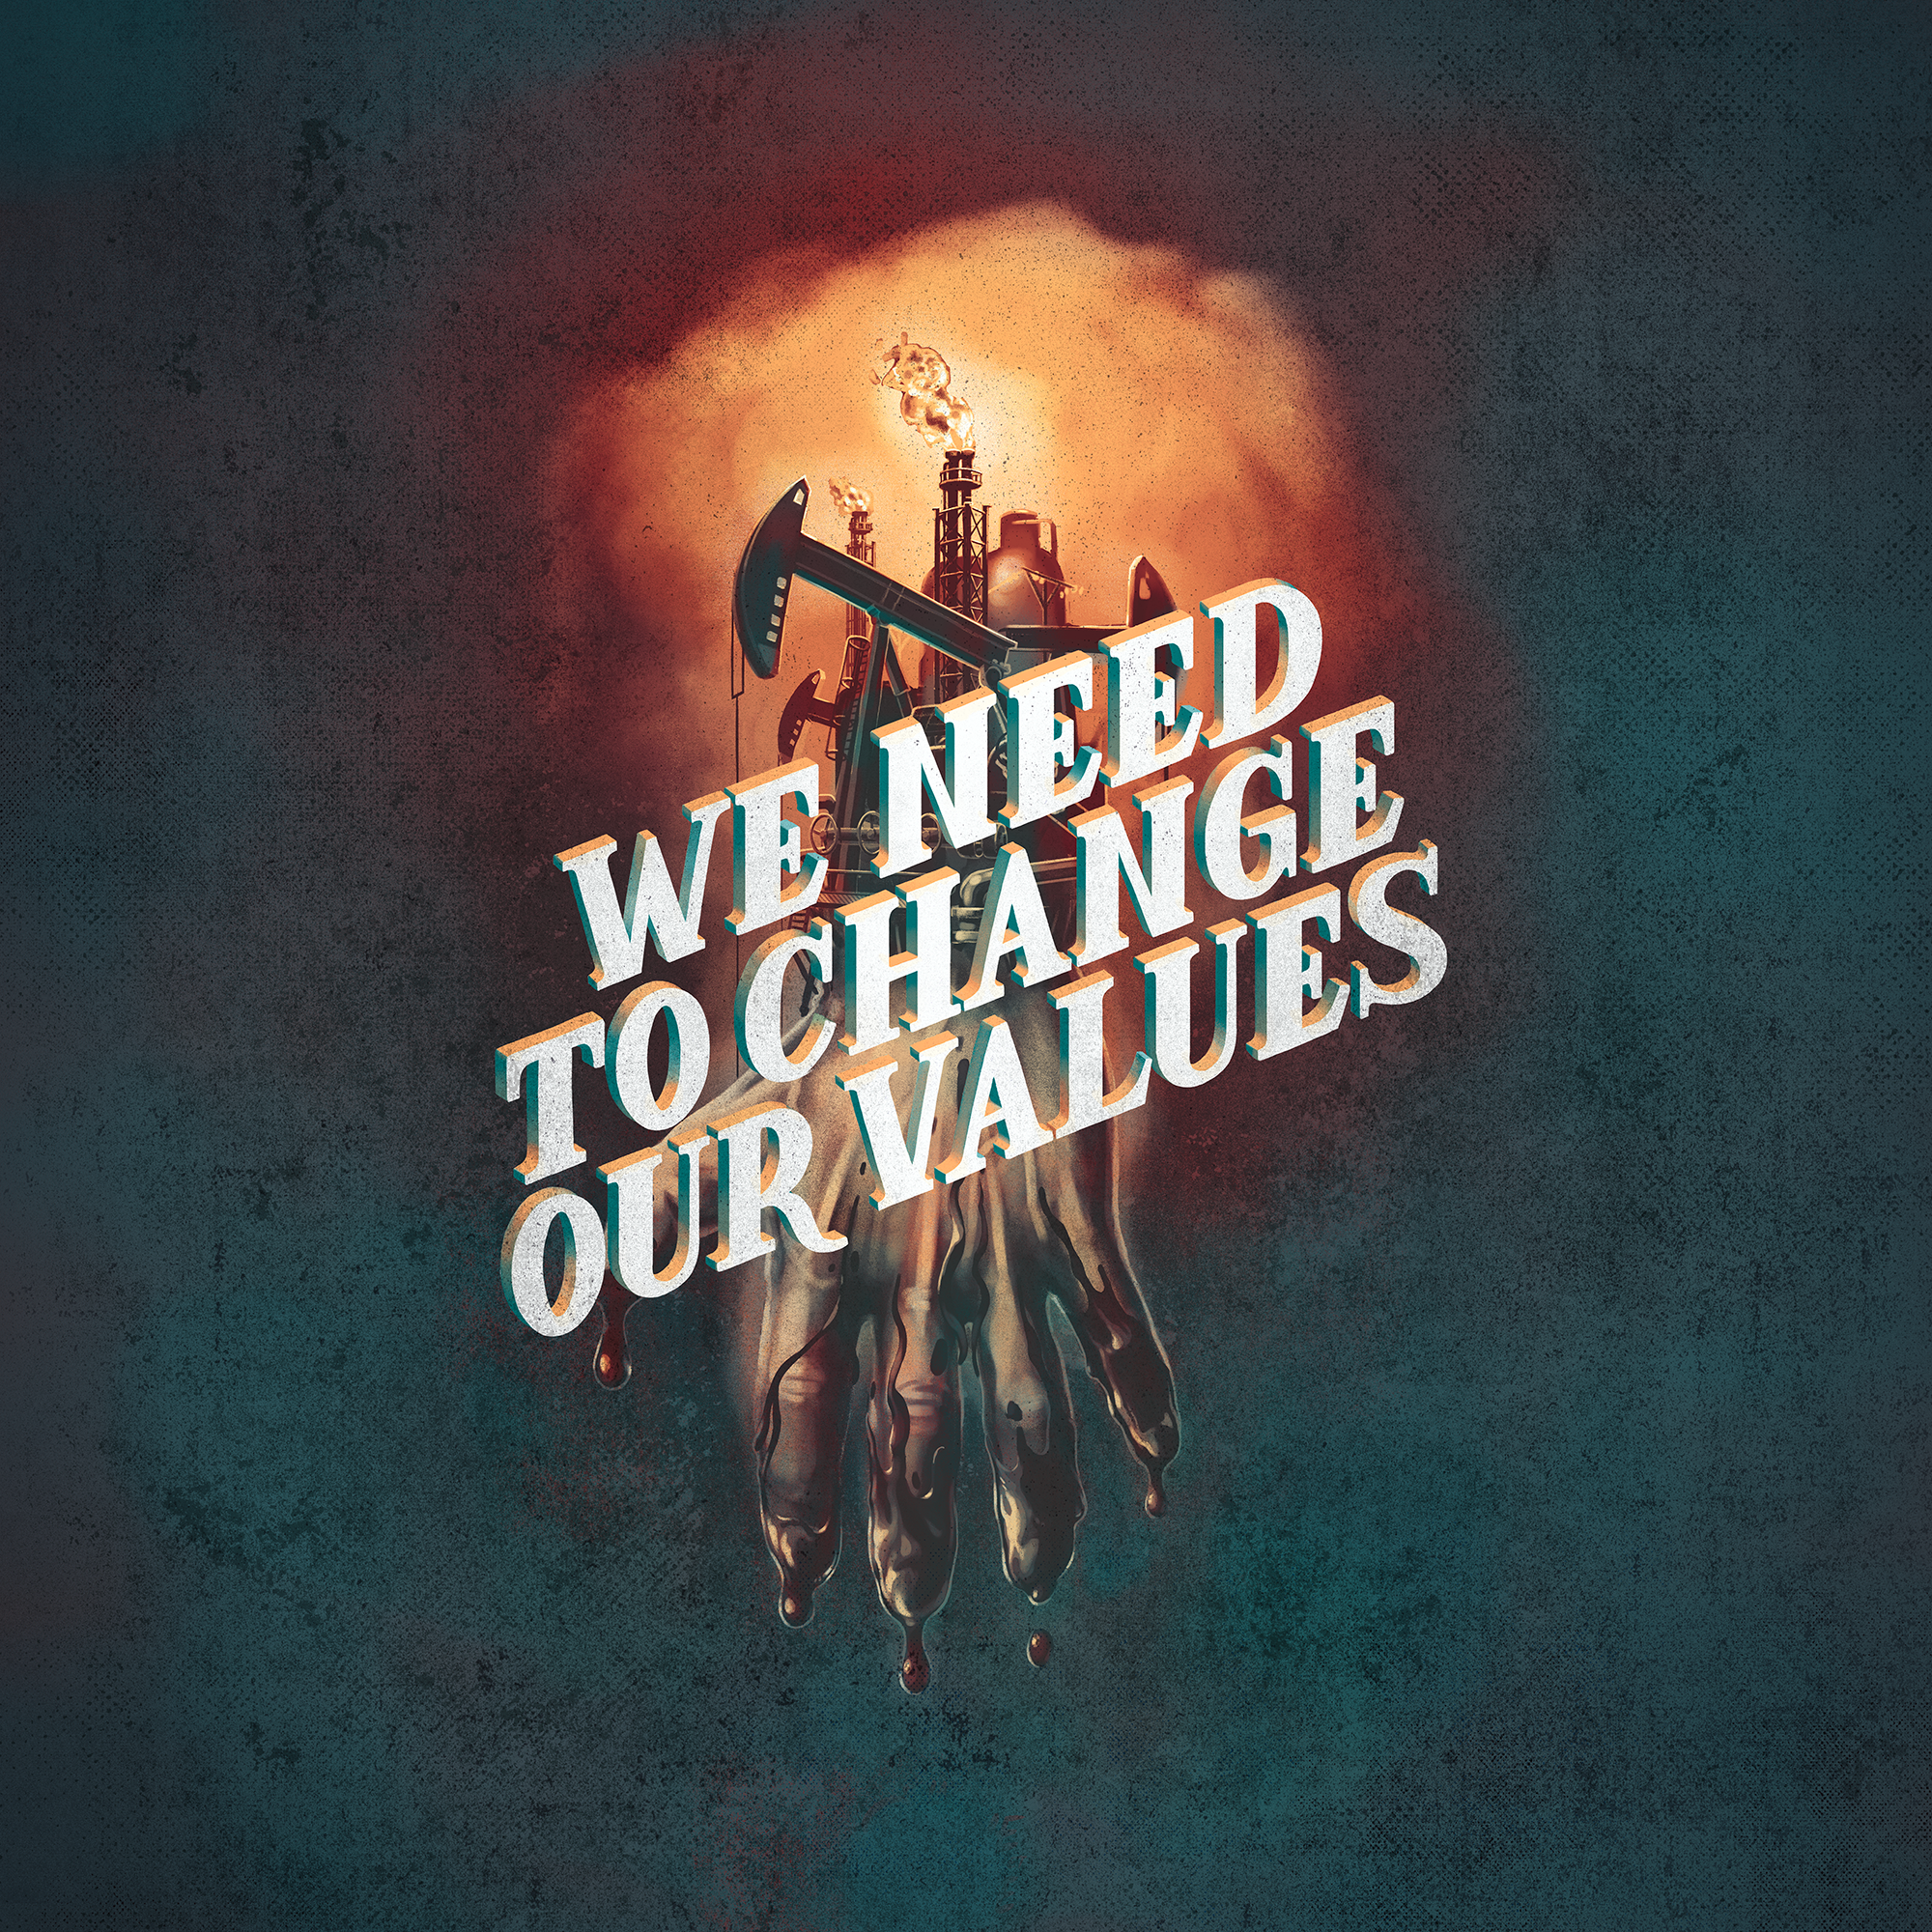 We need to change our values